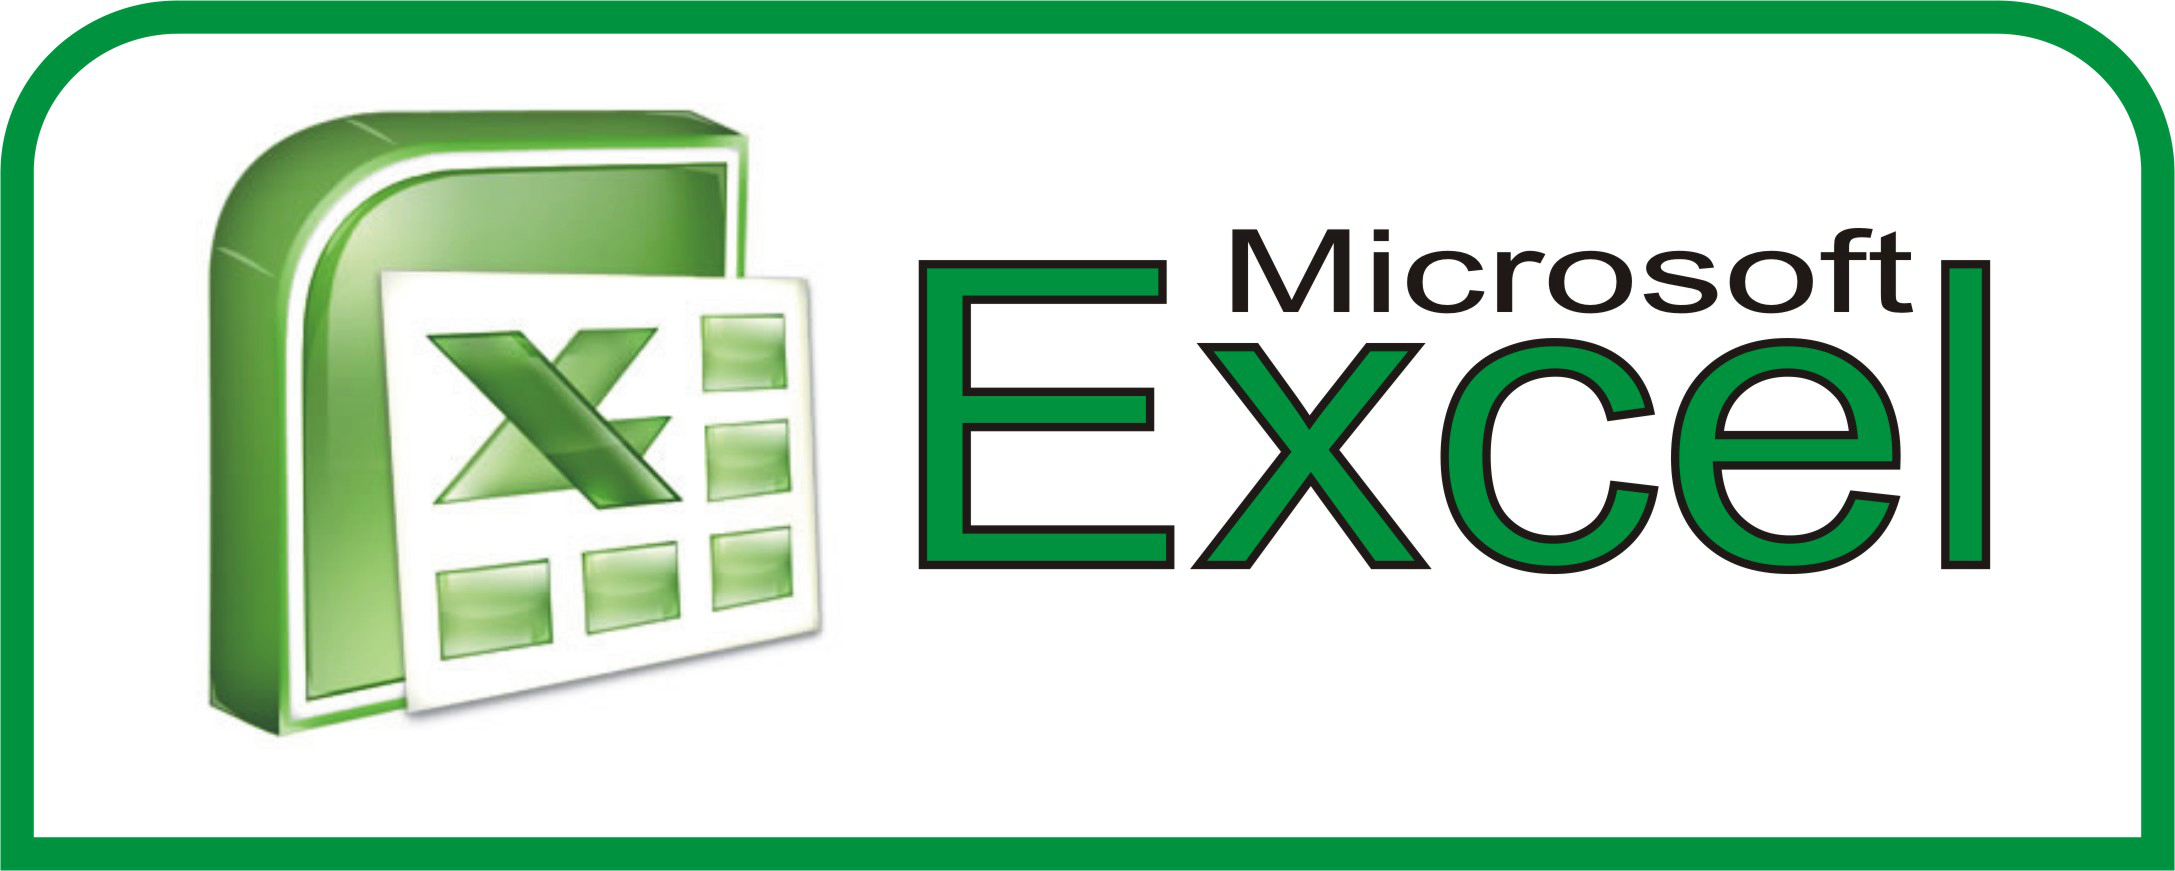 Ediblewildsus  Ravishing  Excel Shortcuts You Probably Didnt Know About  Techdissected With Excellent Forecast Function In Excel Besides How Do You Merge And Center Cells In Excel Furthermore Ms Excel Vlookup With Divine Powermap For Excel Also How To Create Dropdown In Excel In Addition Group Rows In Excel And How To Calculate R Squared In Excel As Well As How To Create Scatter Plot In Excel Additionally Excel To Do List From Techdissectedcom With Ediblewildsus  Excellent  Excel Shortcuts You Probably Didnt Know About  Techdissected With Divine Forecast Function In Excel Besides How Do You Merge And Center Cells In Excel Furthermore Ms Excel Vlookup And Ravishing Powermap For Excel Also How To Create Dropdown In Excel In Addition Group Rows In Excel From Techdissectedcom